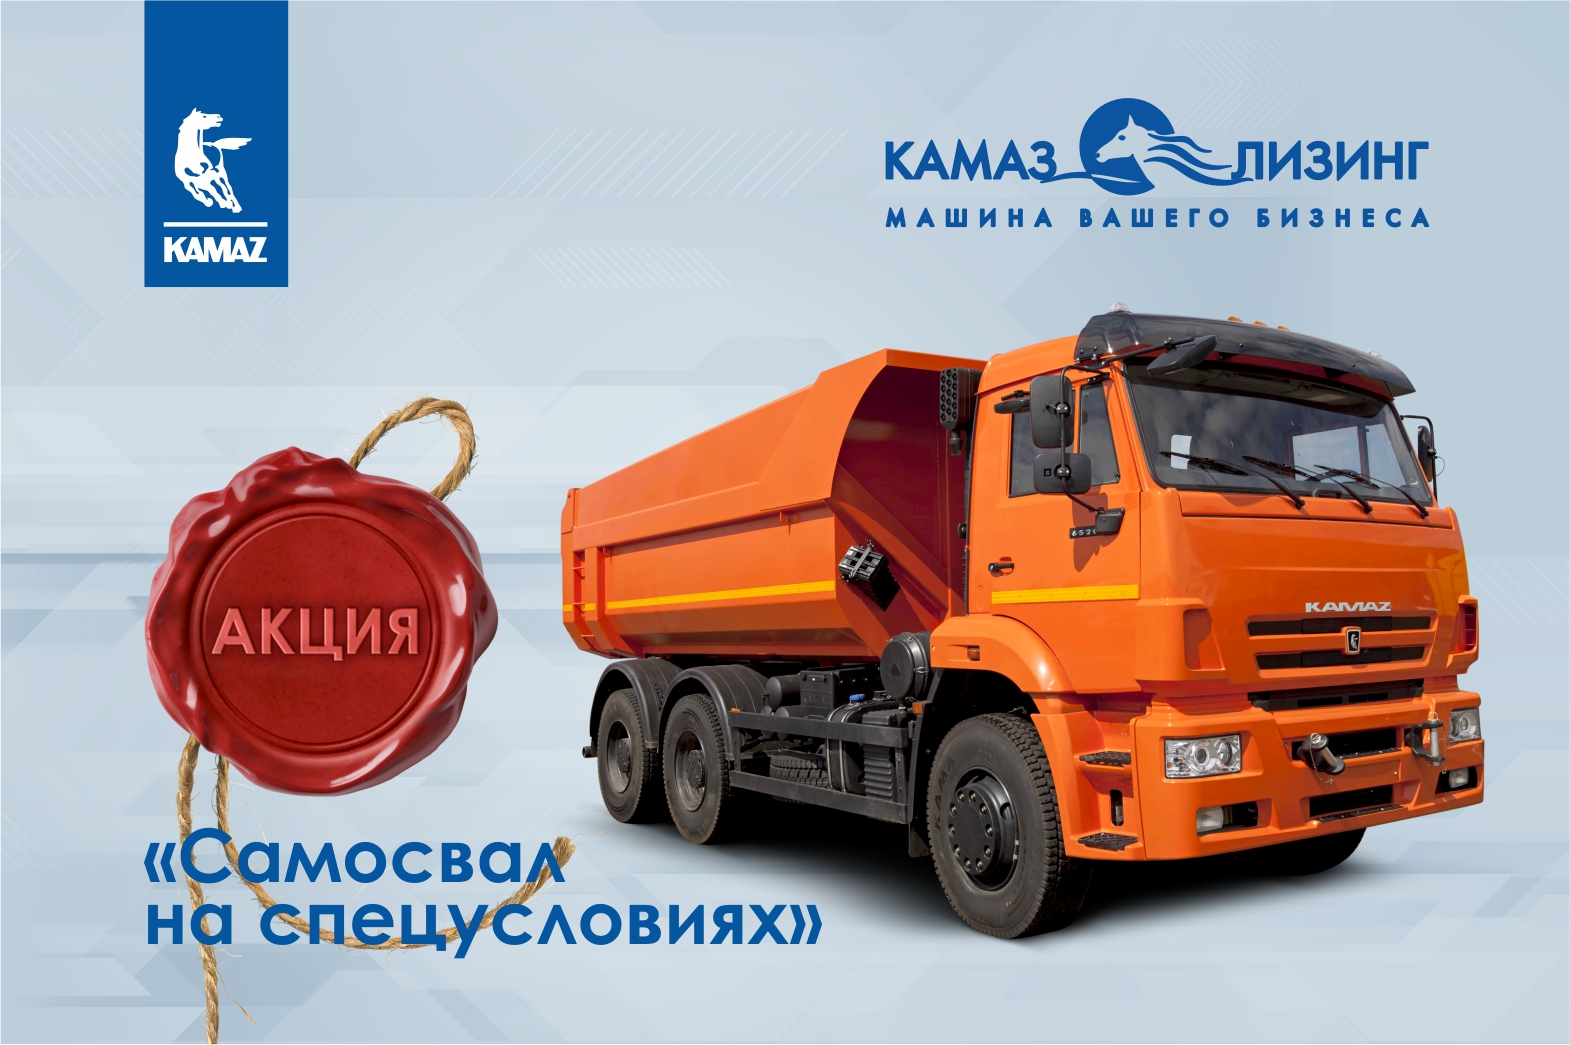 https://kamaz.ru/upload/iblock/ecf/ecf5be939edda5d522b4f4f78c6d69f8.jpg